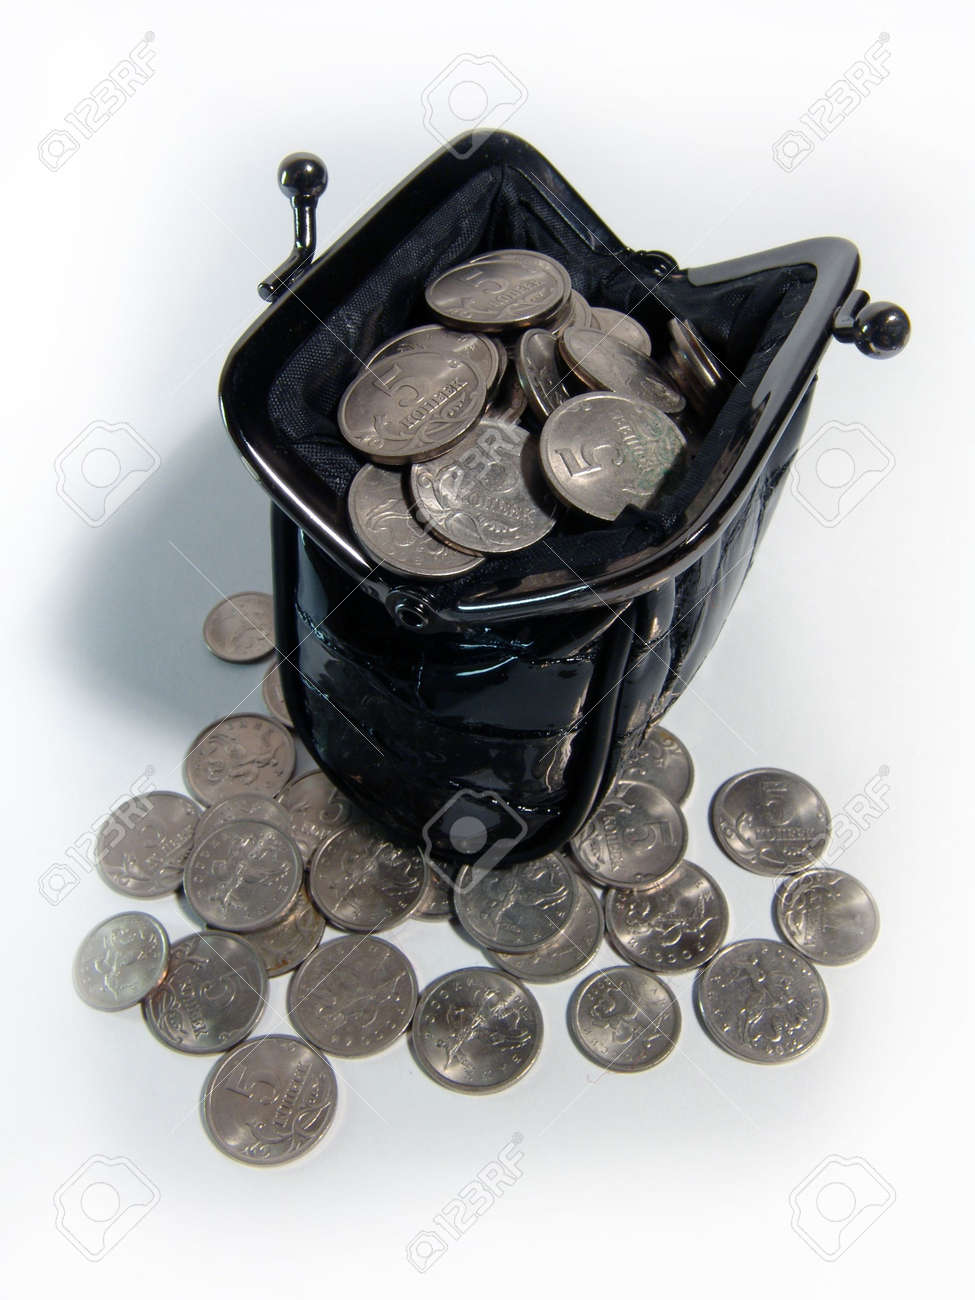 A photo of black women coin purse full of coins Stock Photo - 311115